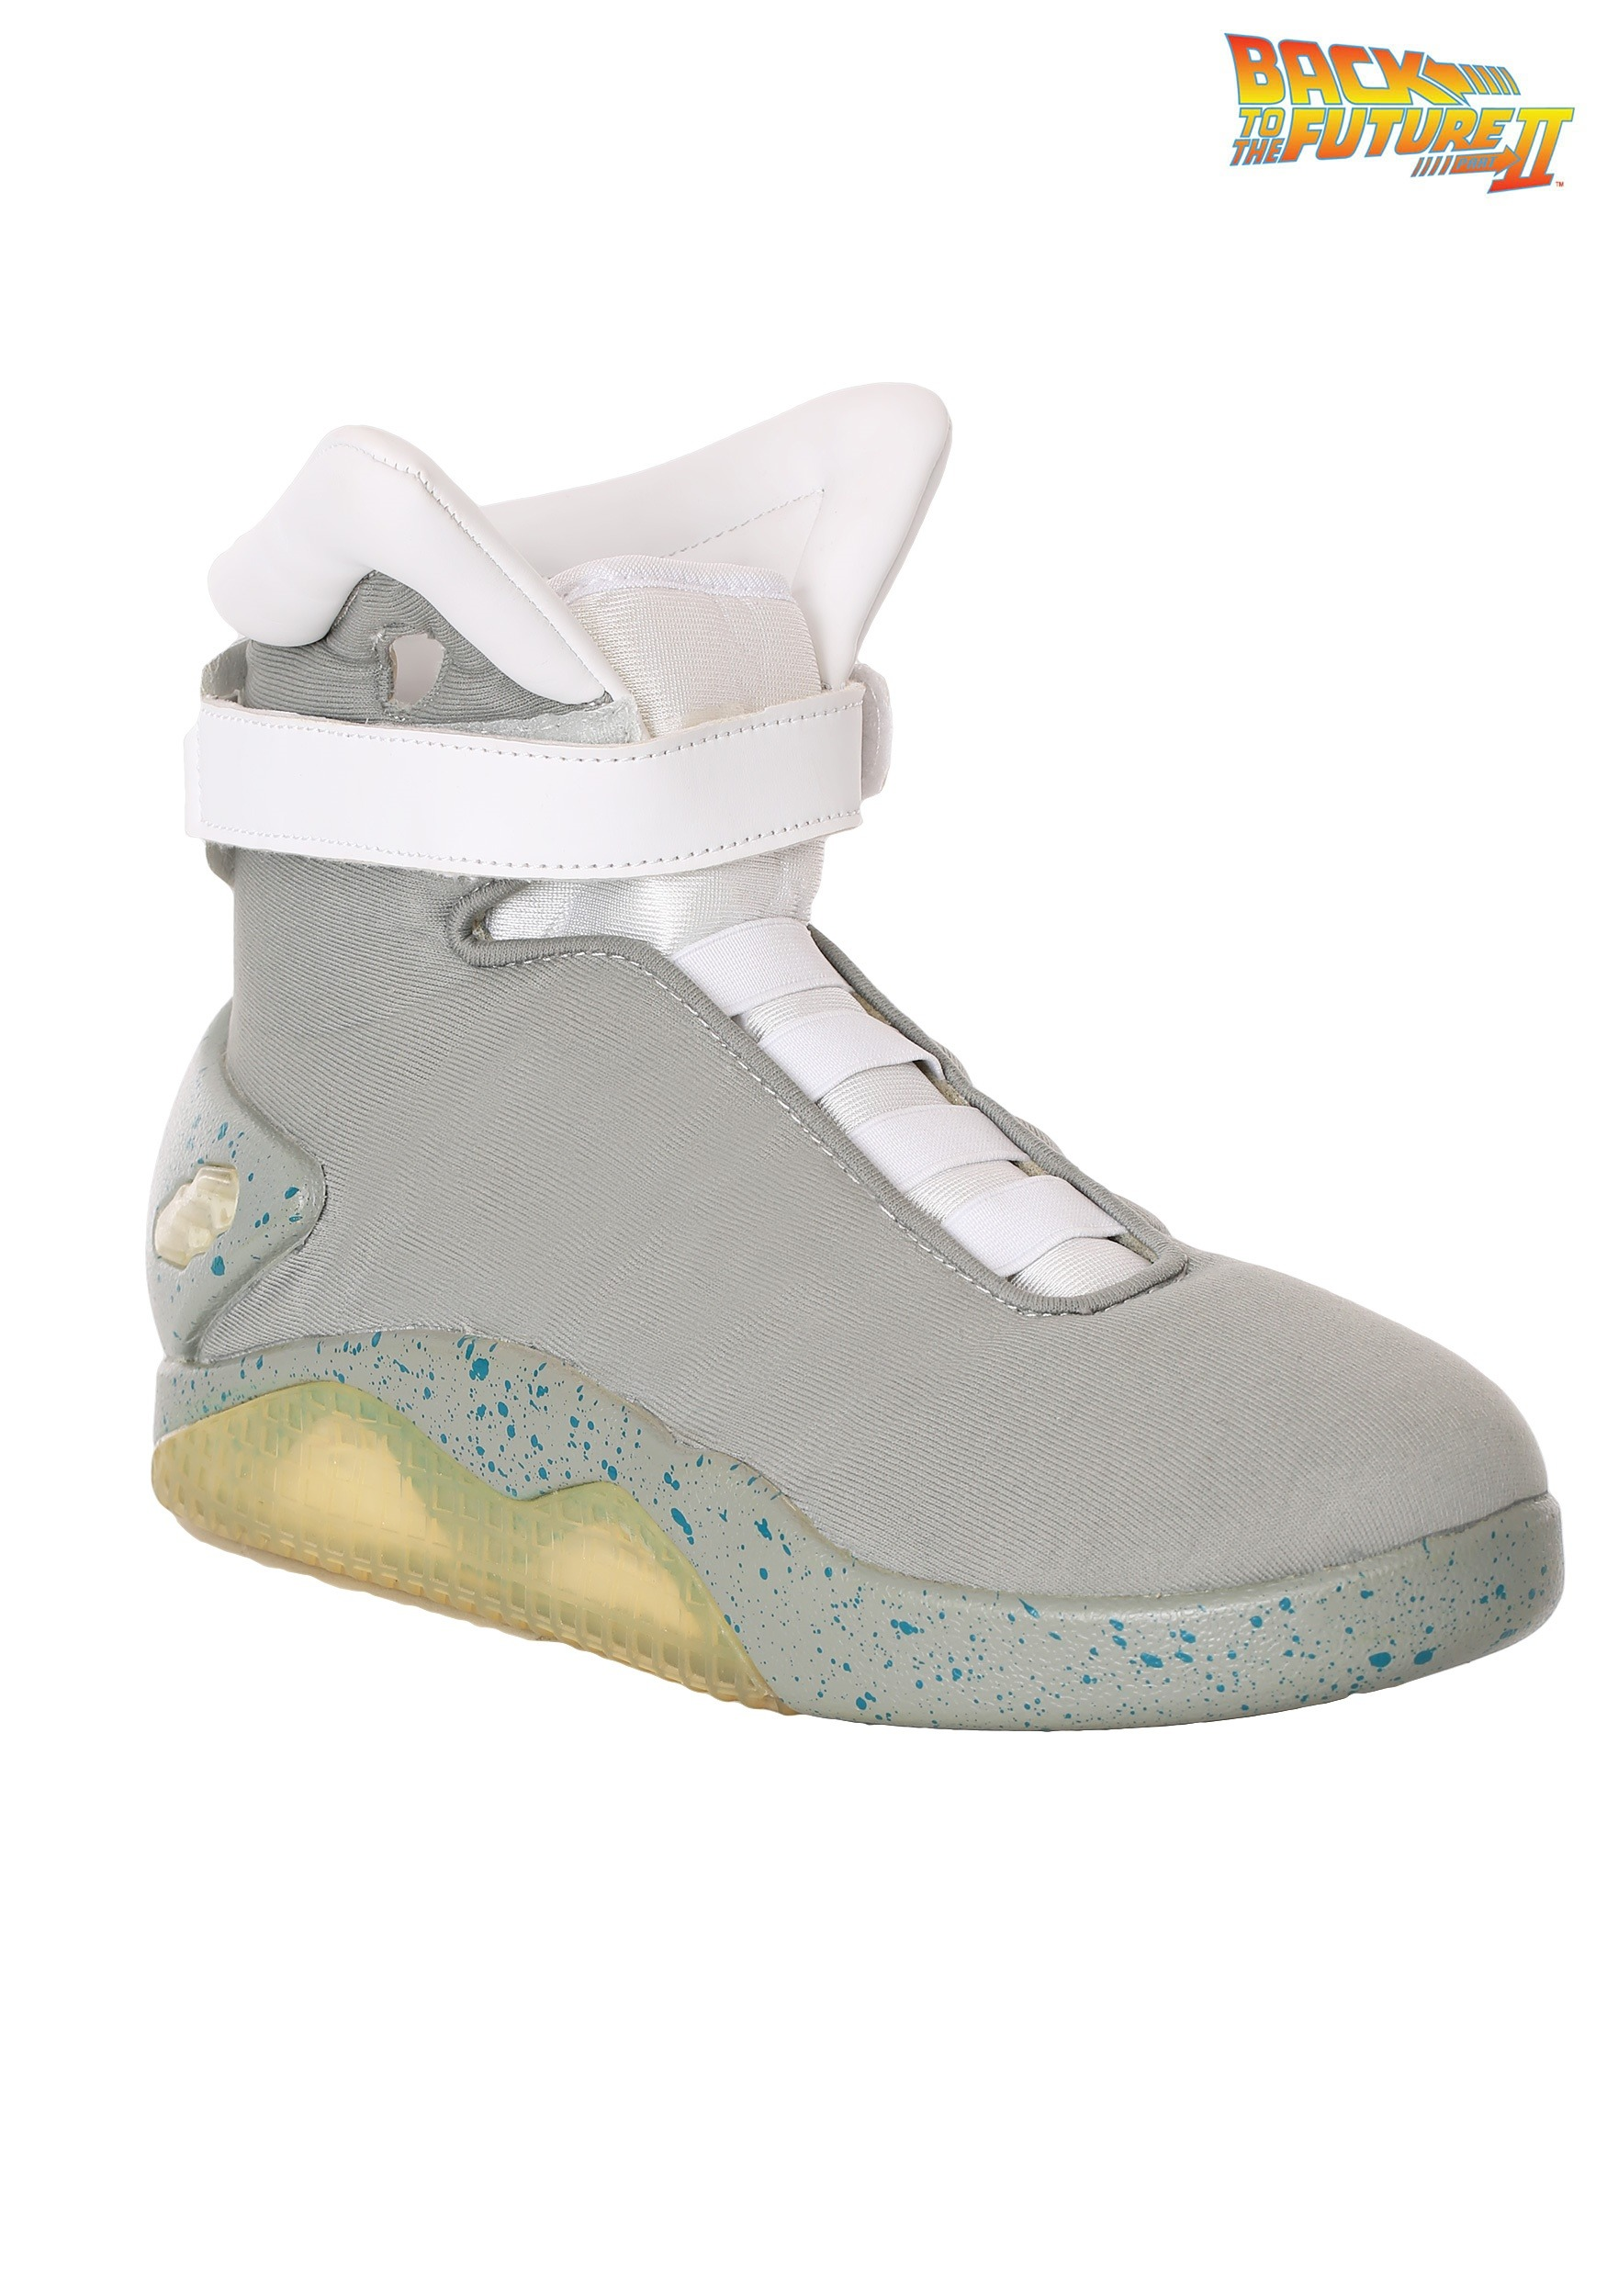 official photos 6099a d453e Back to the Future 2 Light Up Shoes